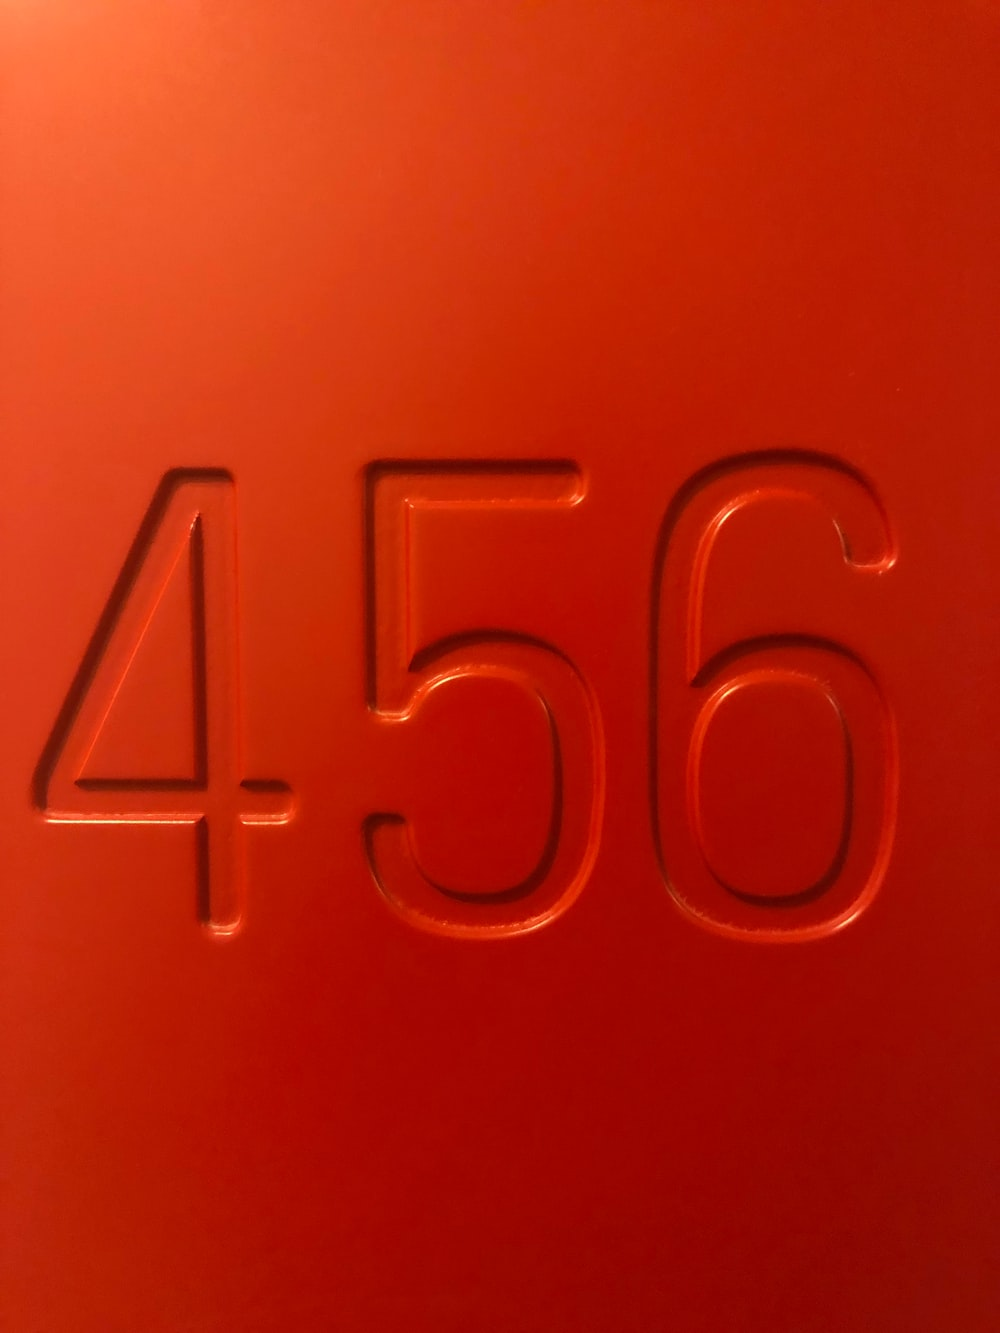 456 text